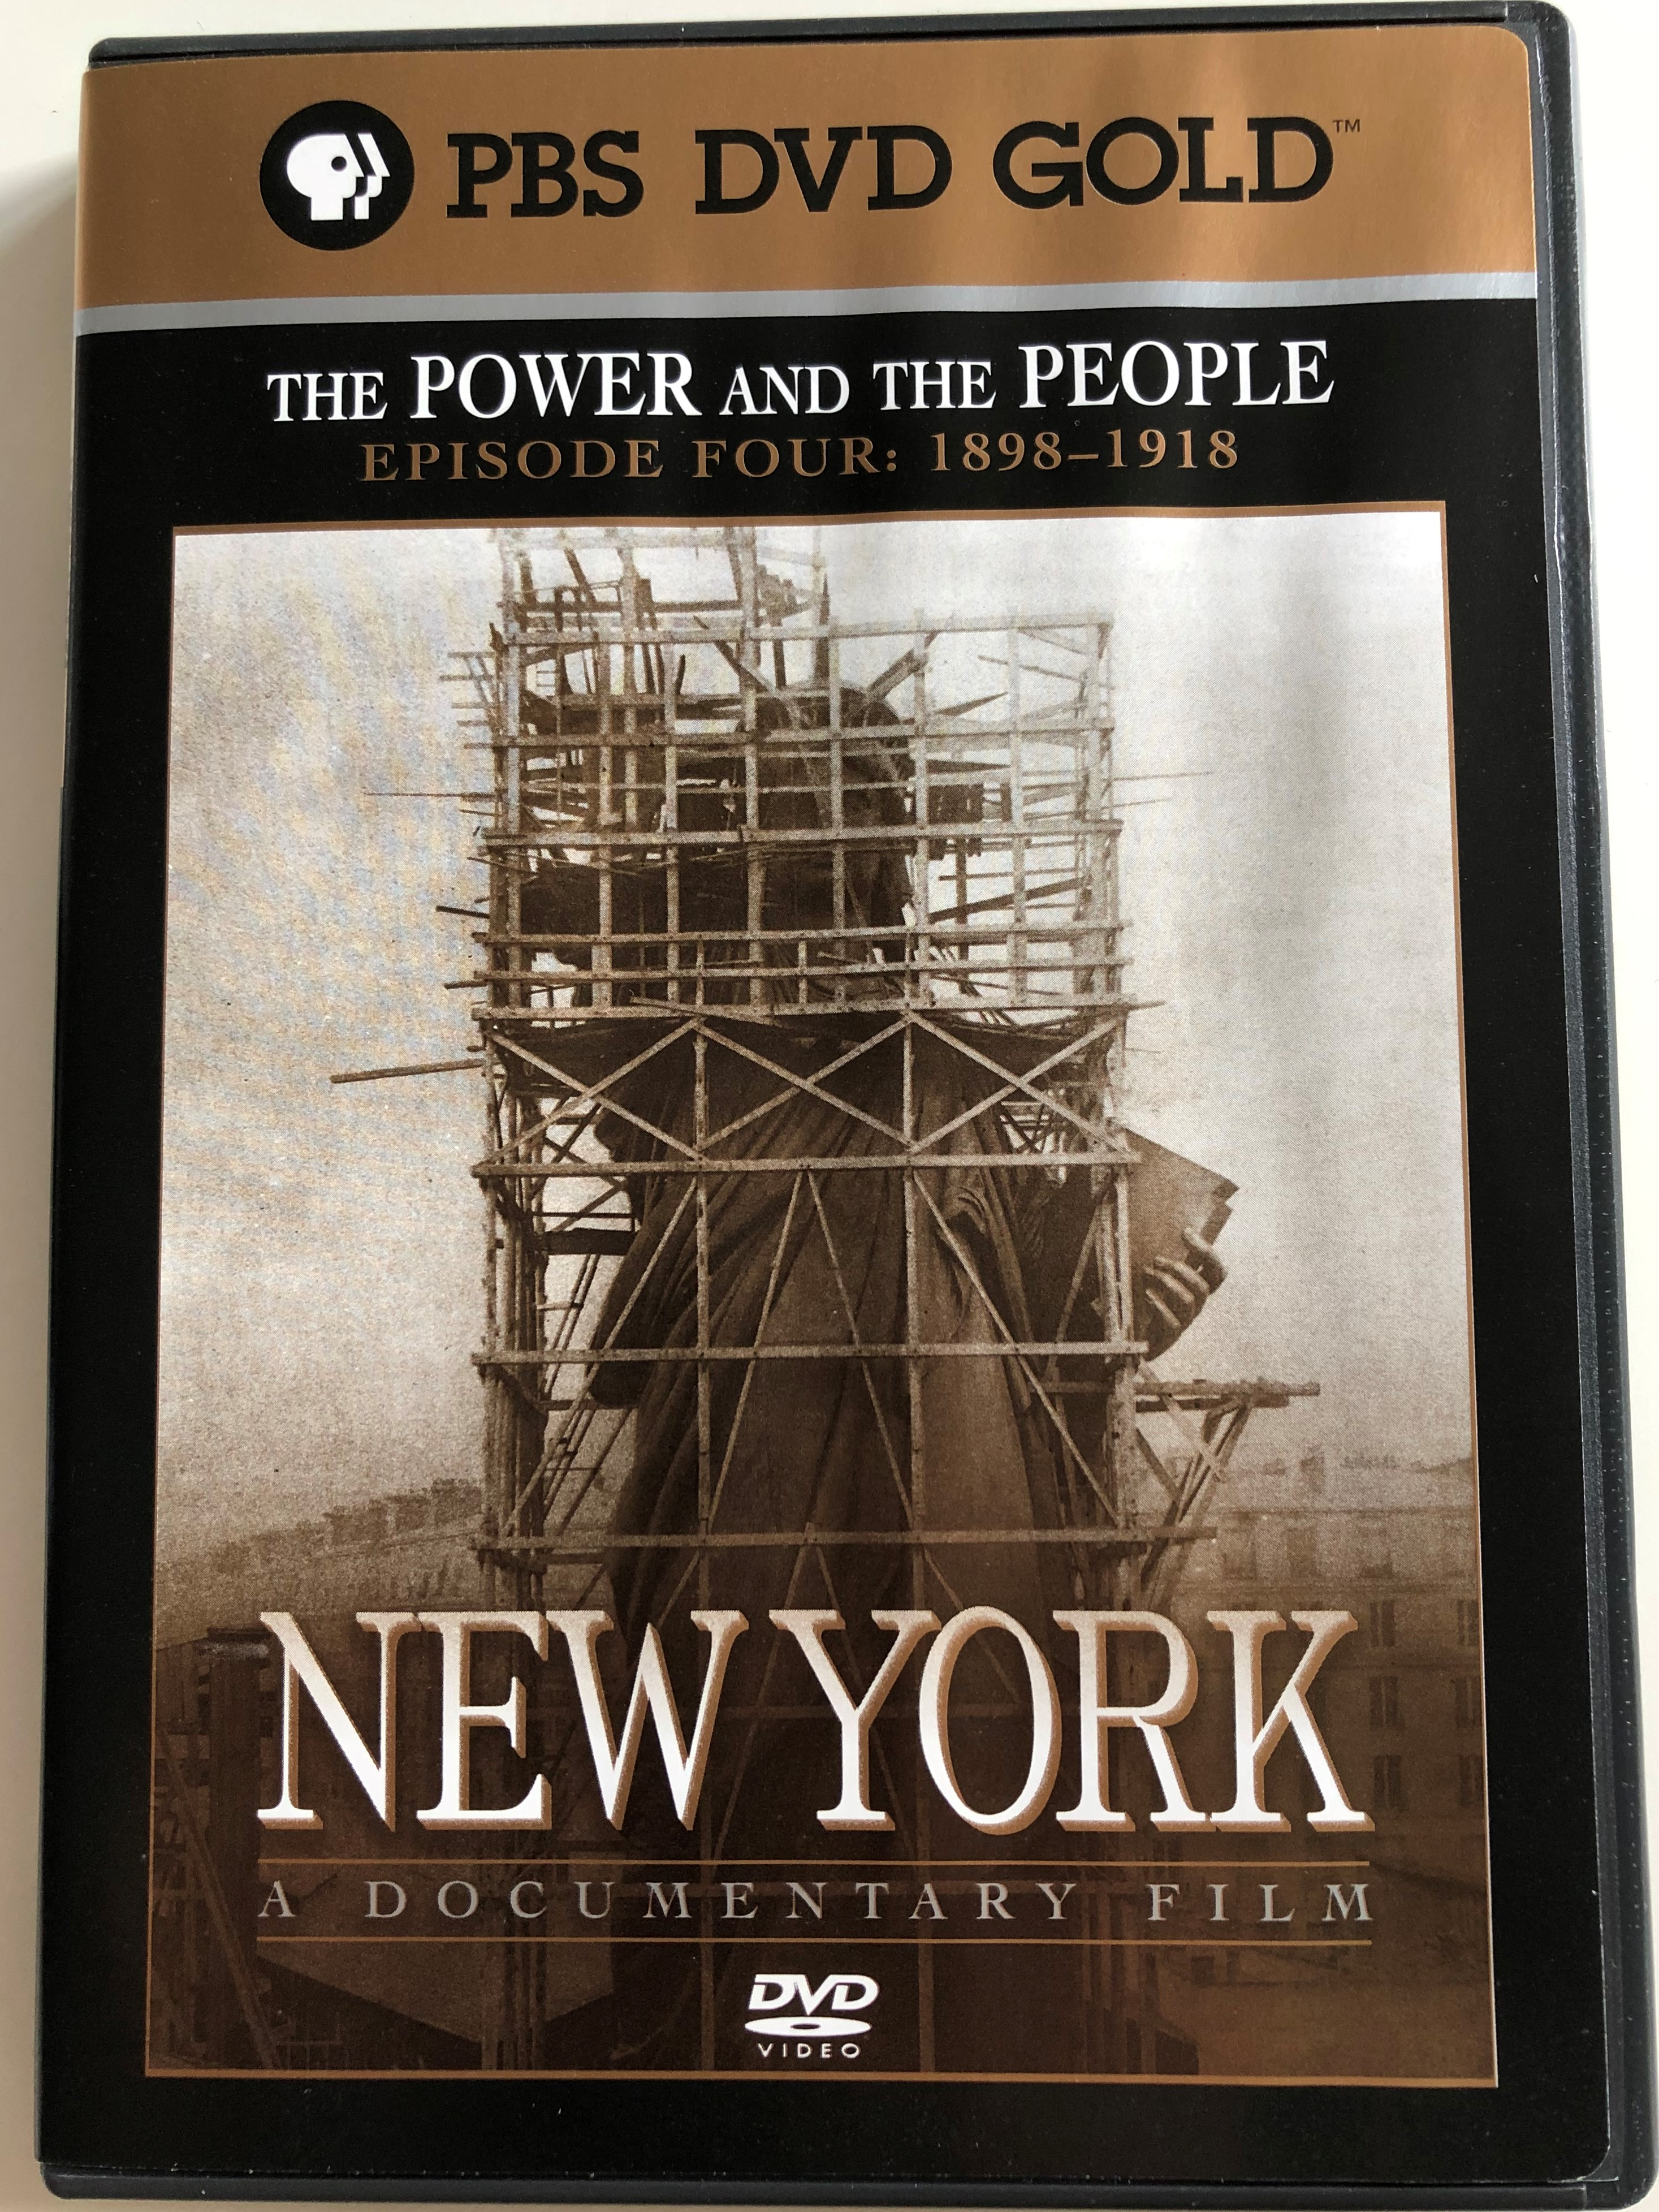 new-york-episode-4-1898-1918-the-power-and-the-people-dvd-1999-directed-by-ric-burns-1.jpg